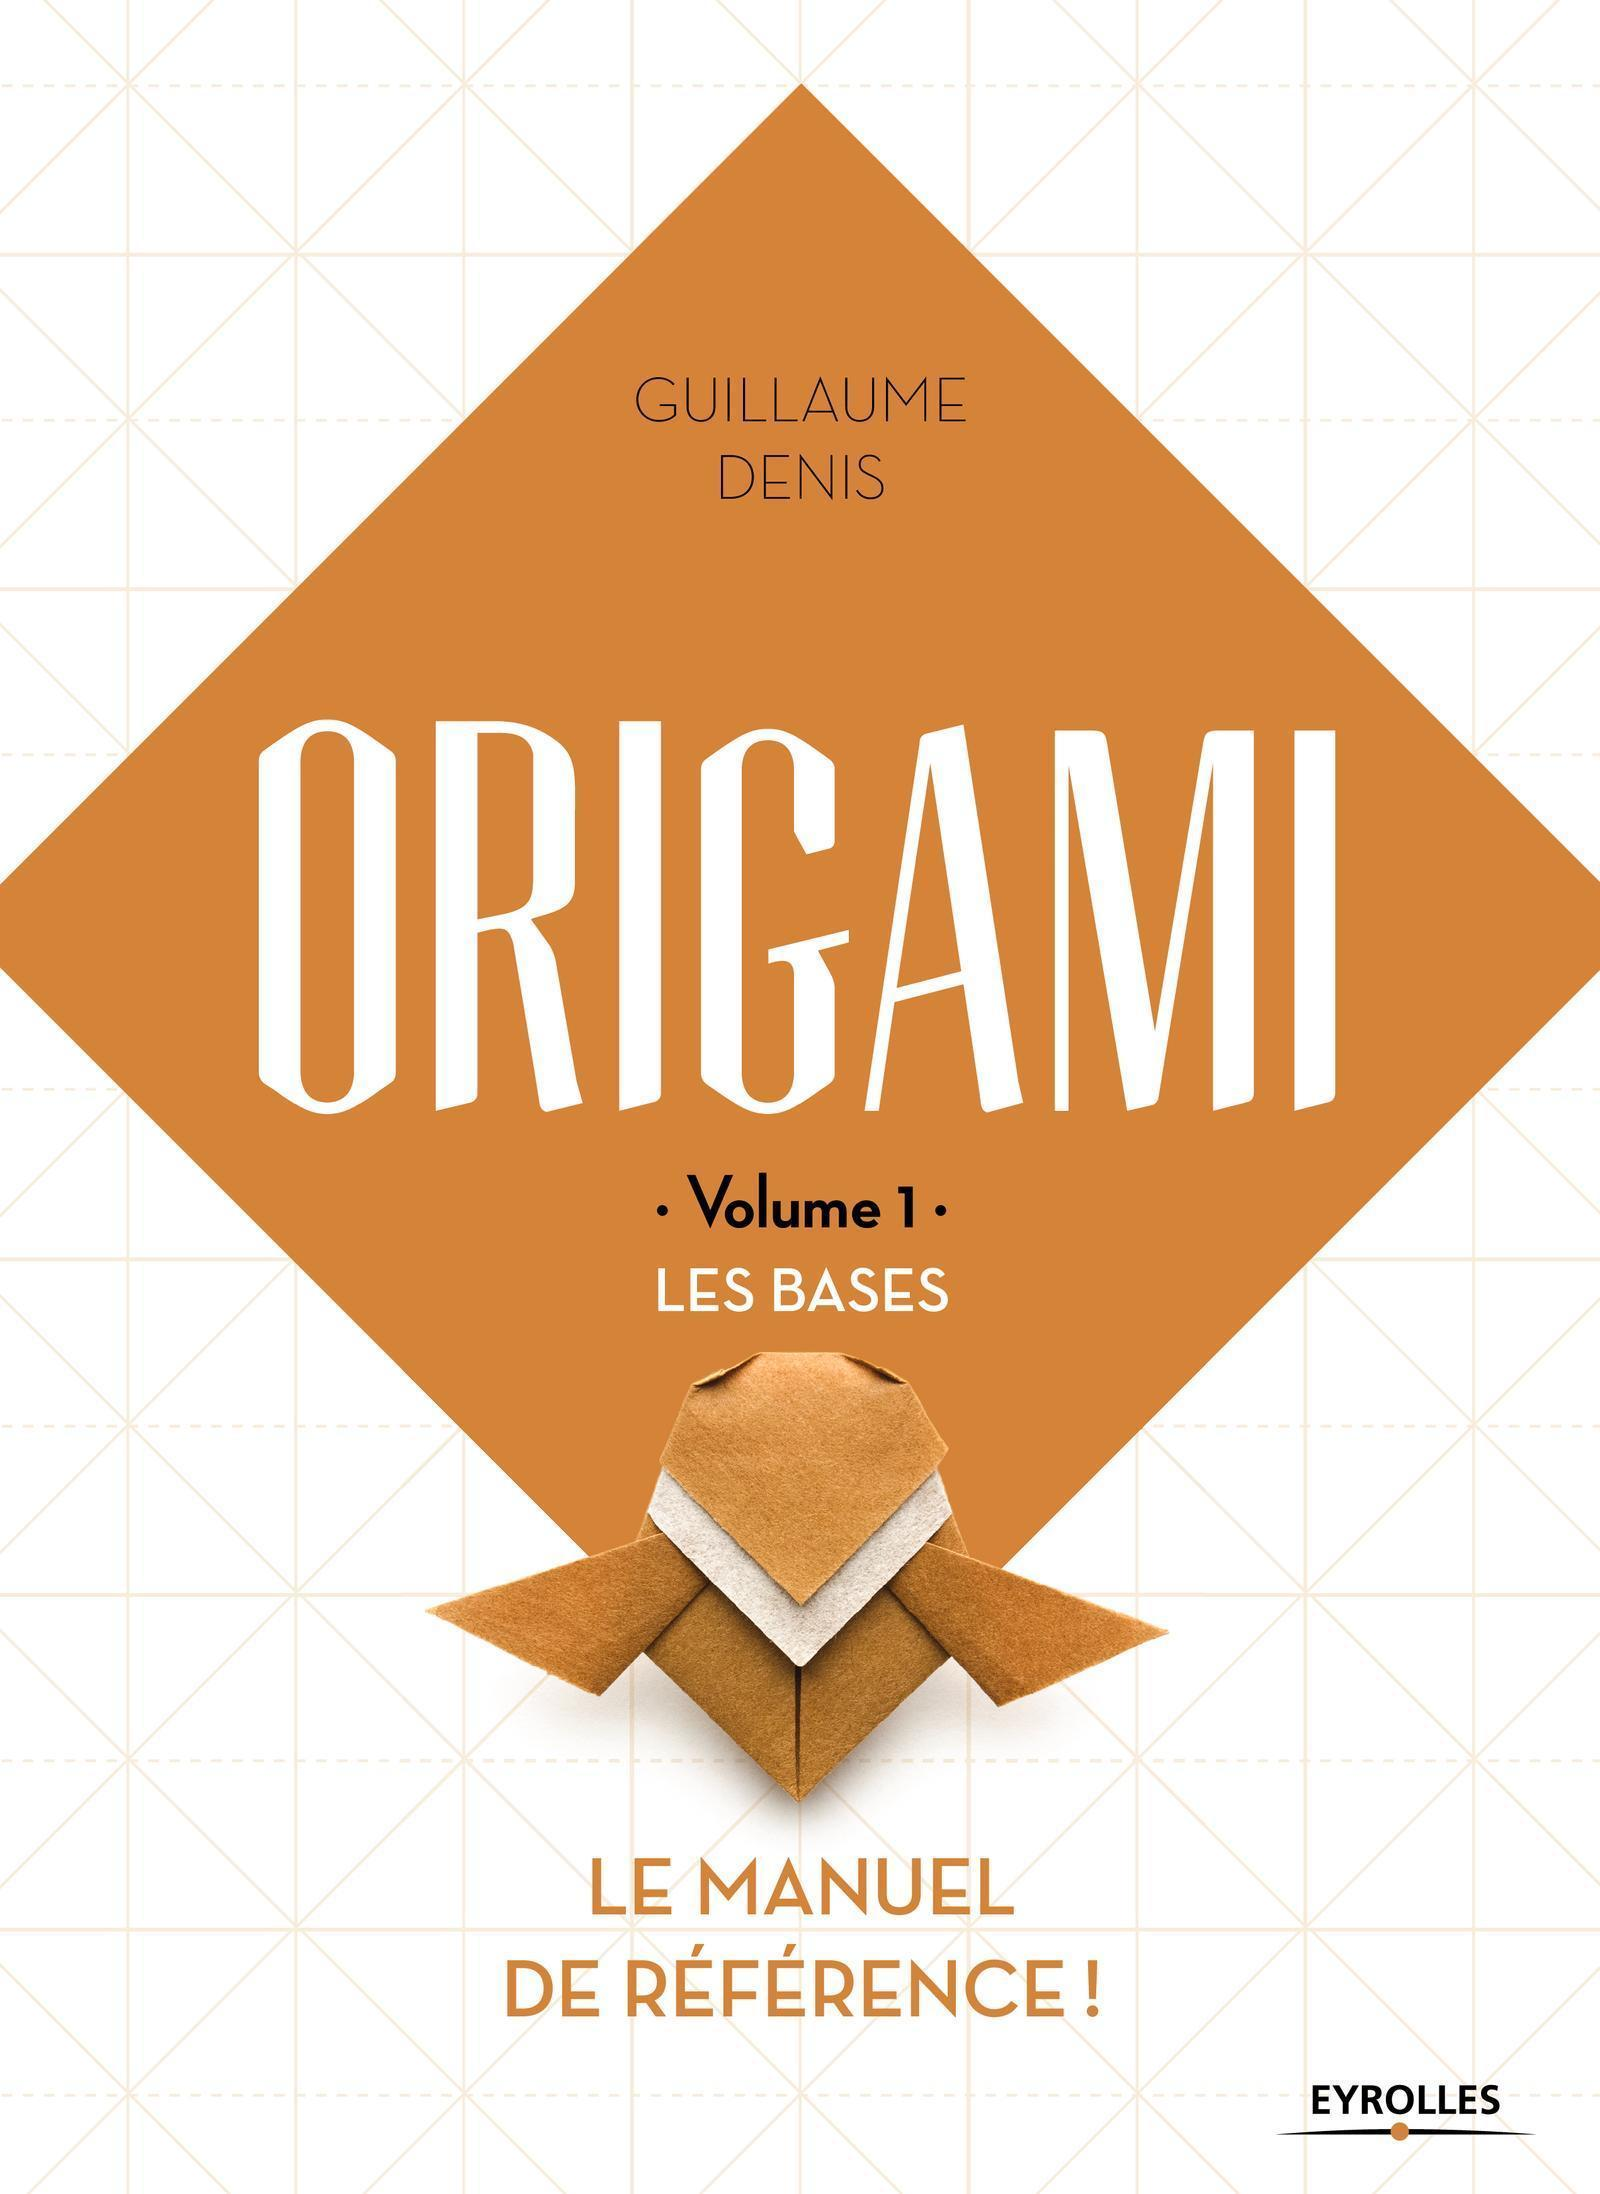 ORIGAMI VOLUME 1 LES BASES